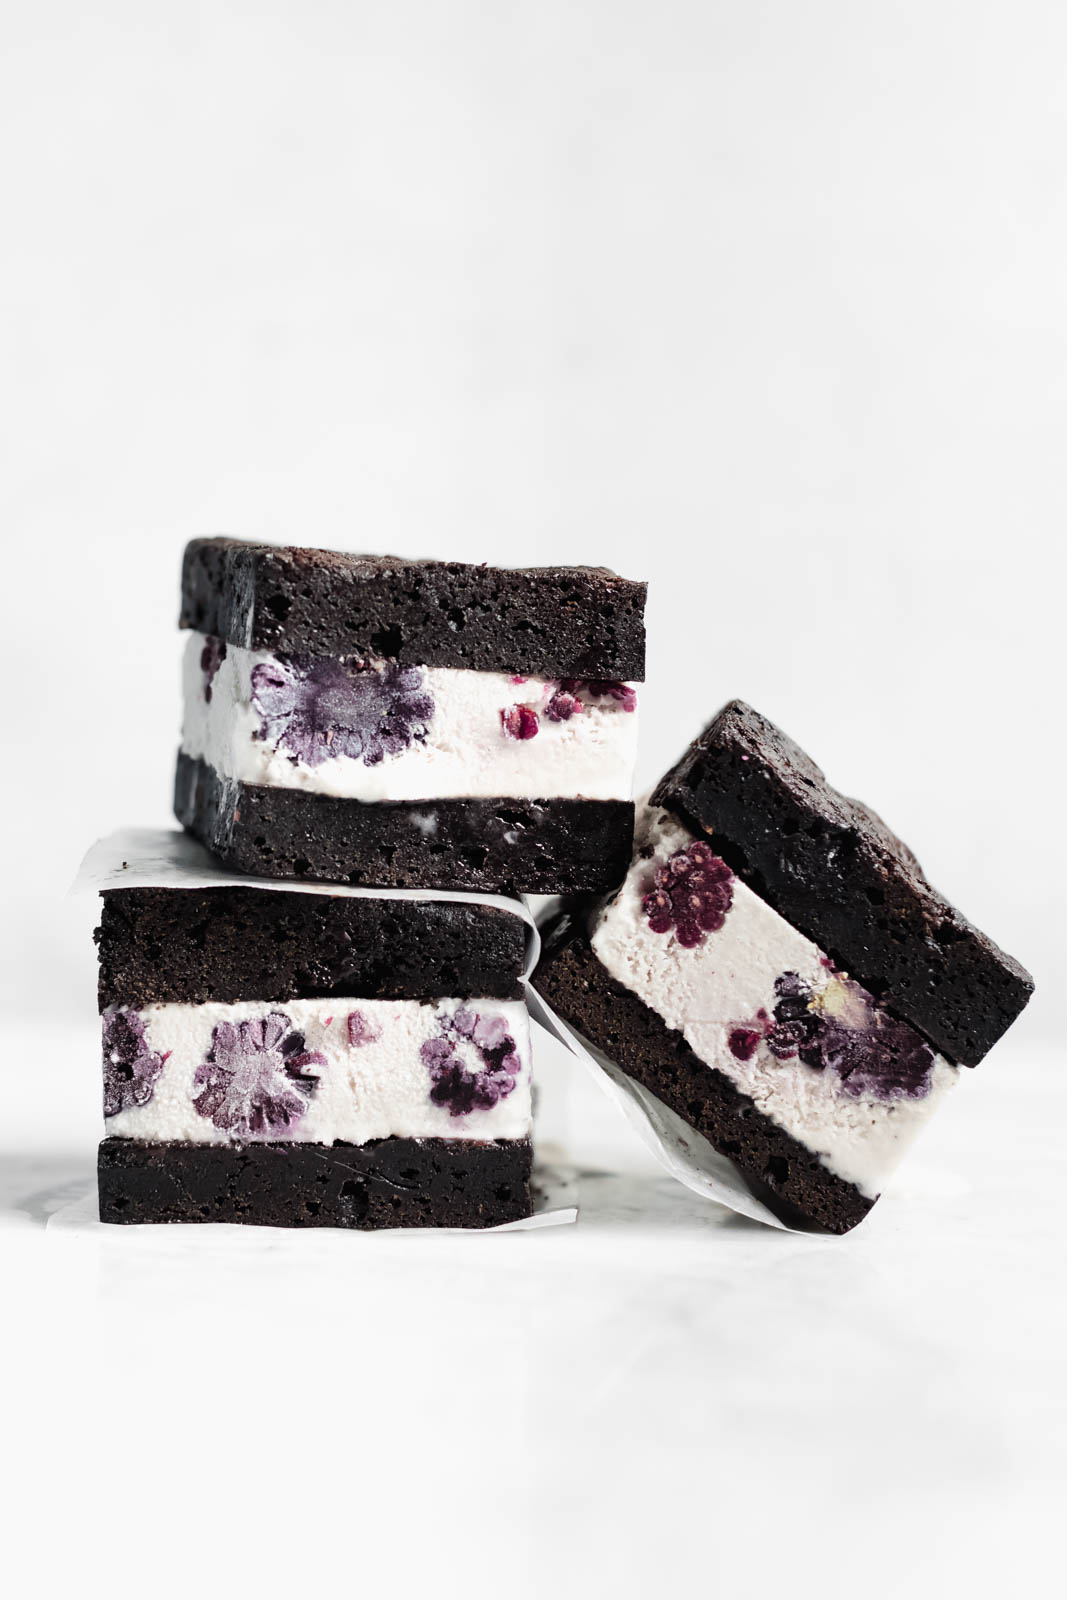 Brownie Ice Cream Sandwiches are the new thing. Made with boxed brownies and store-bought vanilla ice cream mixed with blackberry purée!